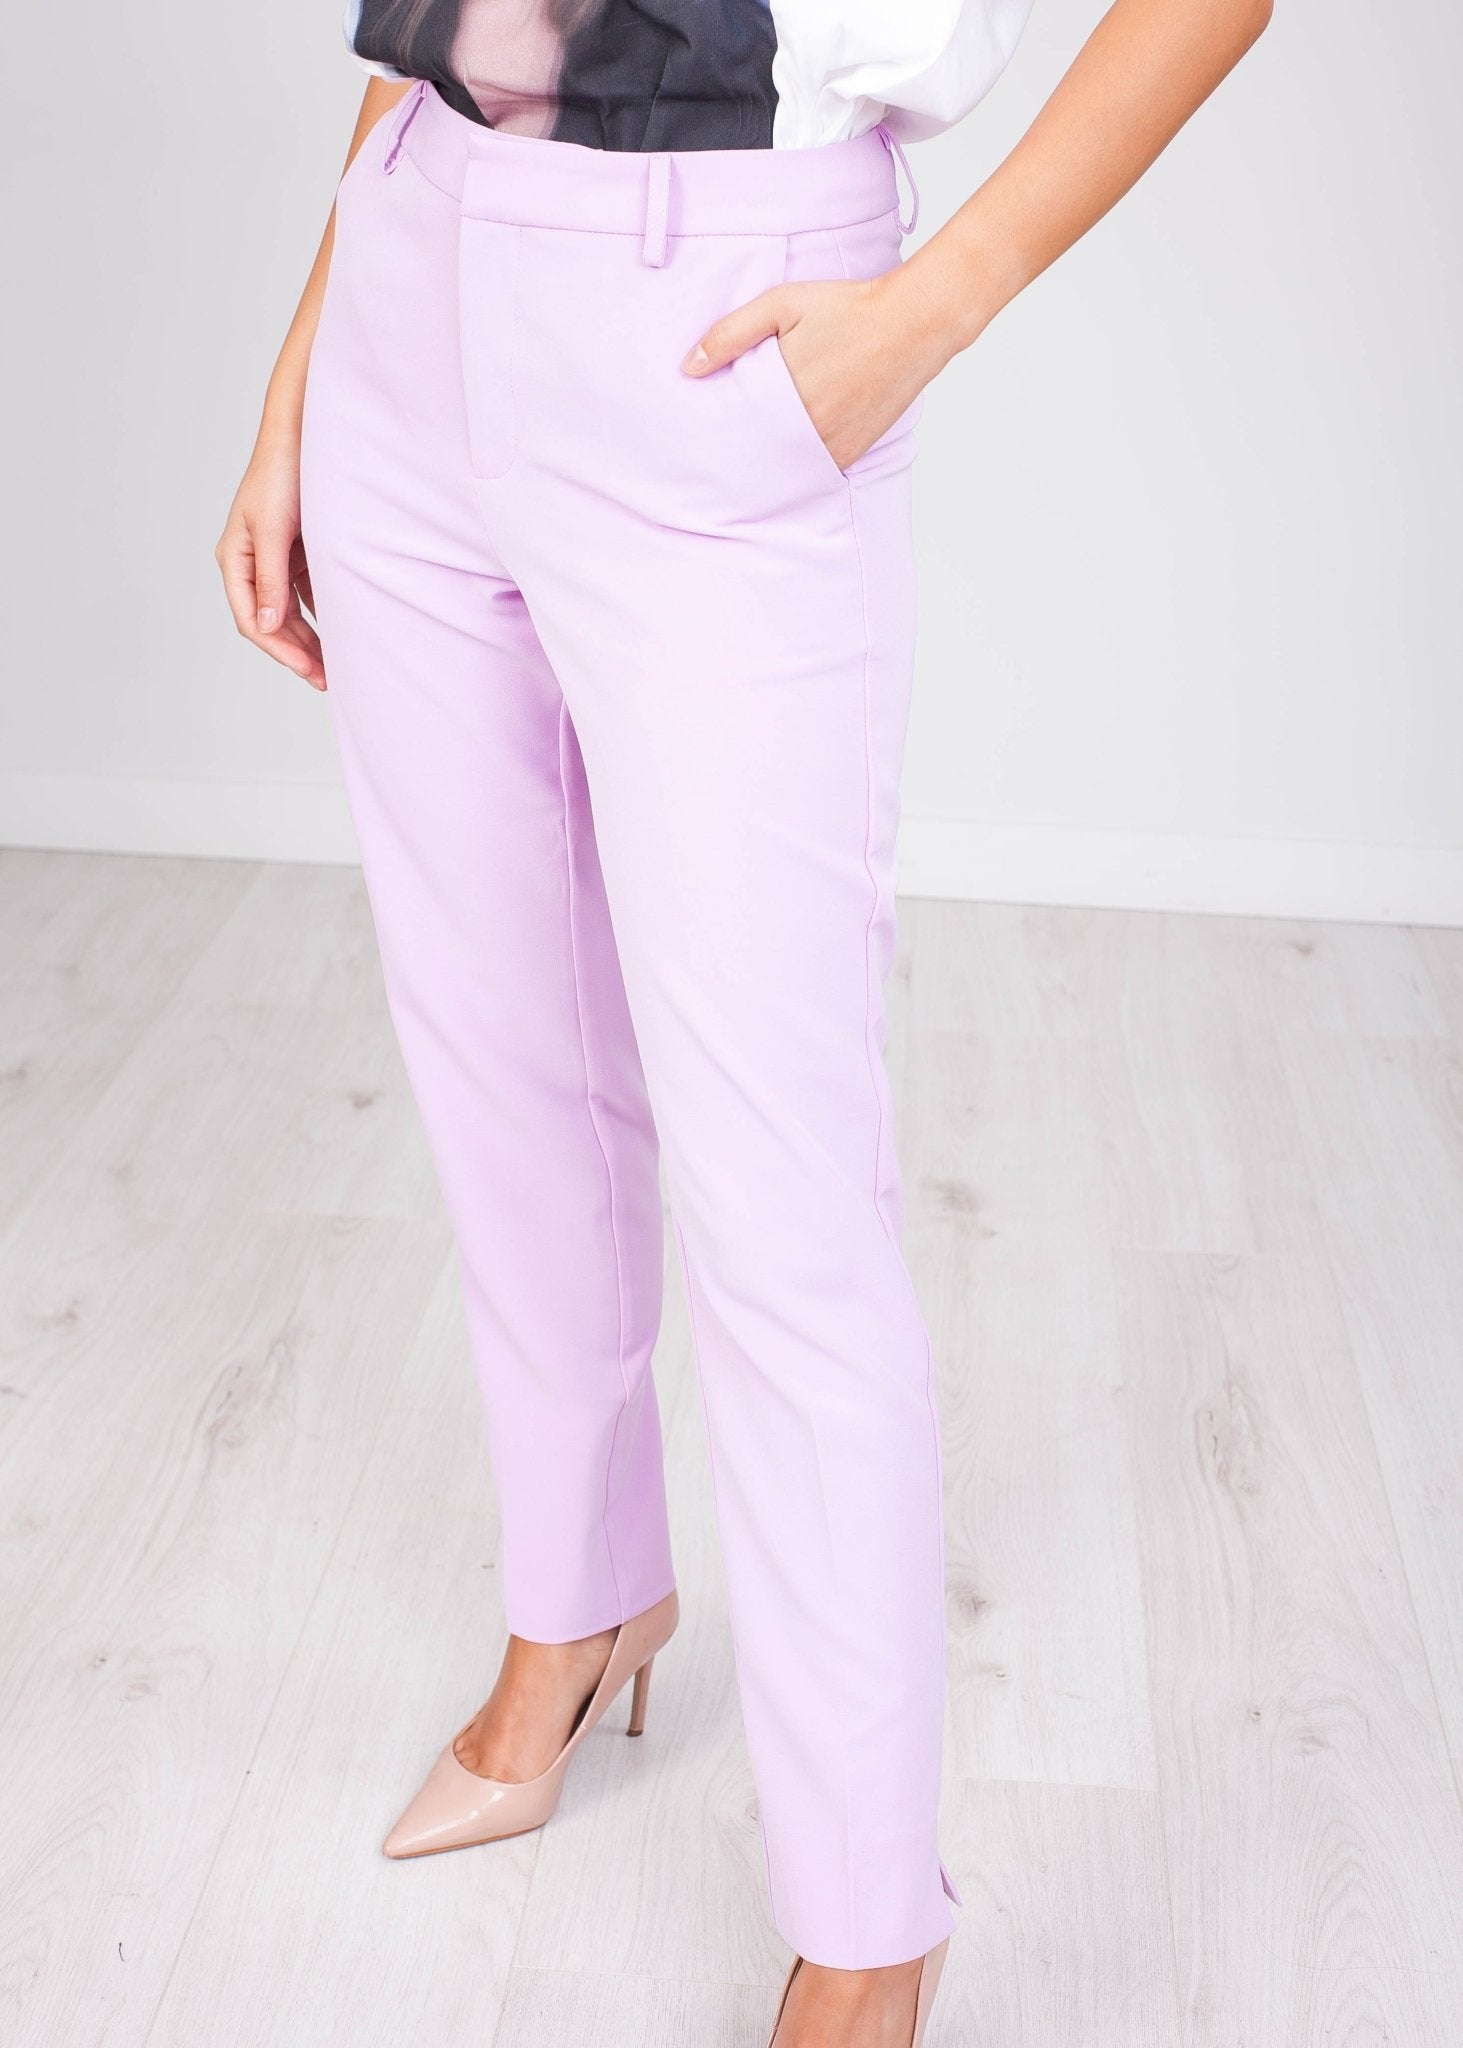 Arabella Lilac Trousers - The Walk in Wardrobe